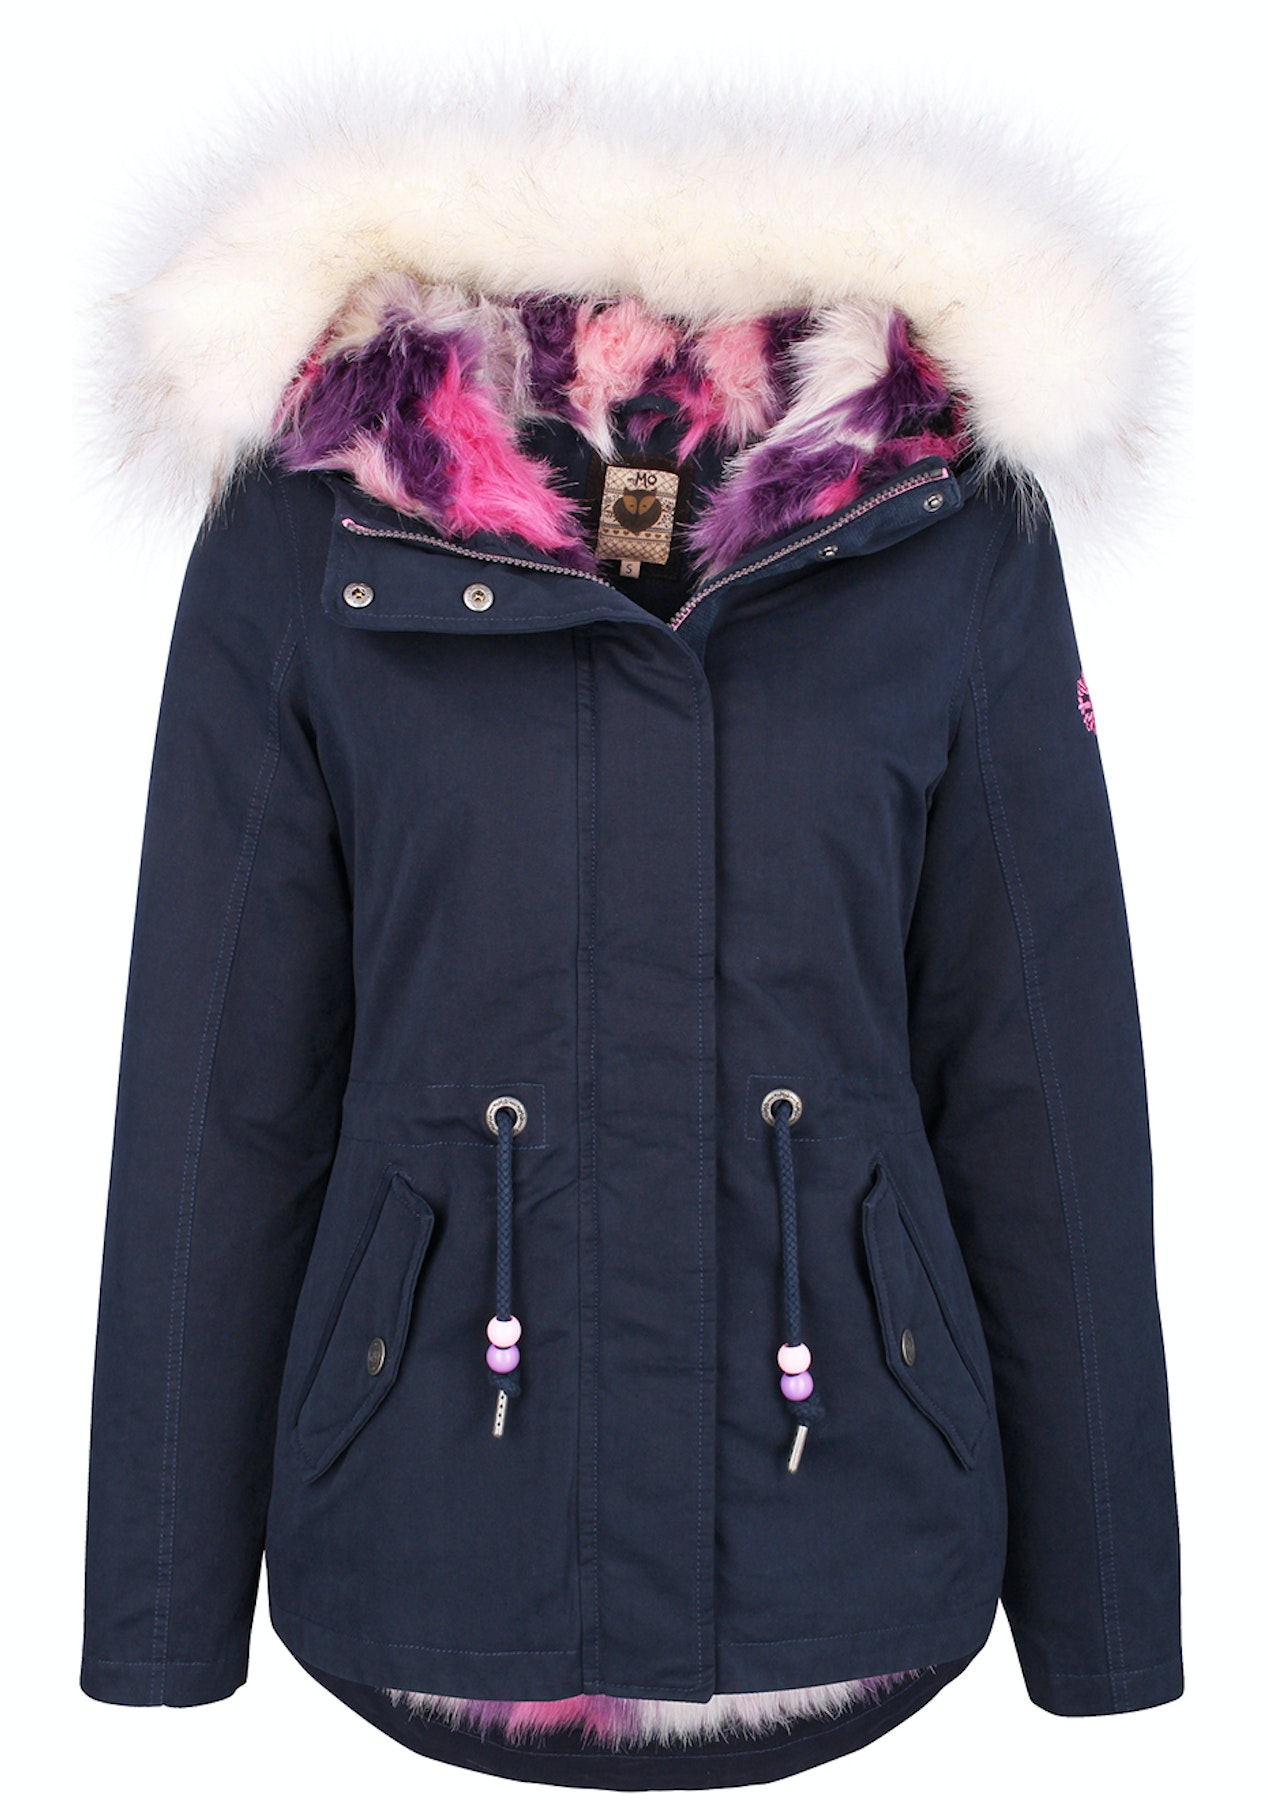 a13b8cf86578 myMO Jacket - myMO Winter Jackets - Onceit